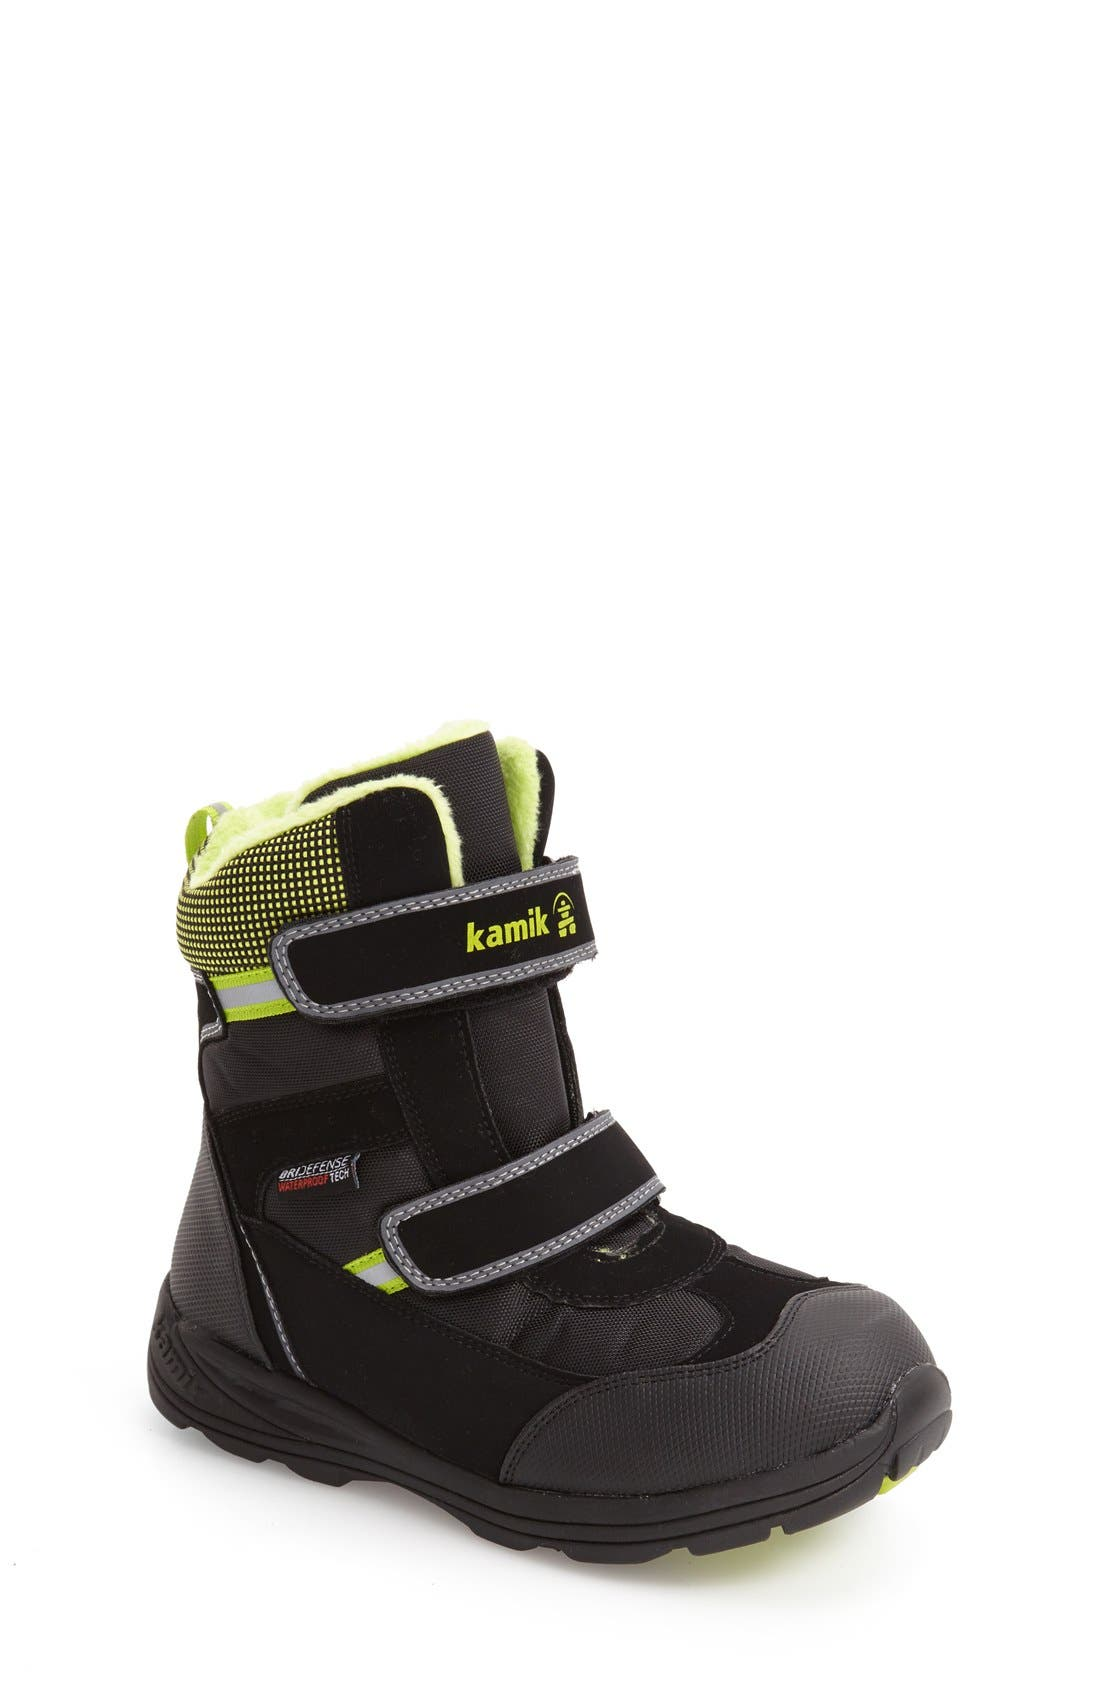 Slate Snow Boot,                         Main,                         color, 010